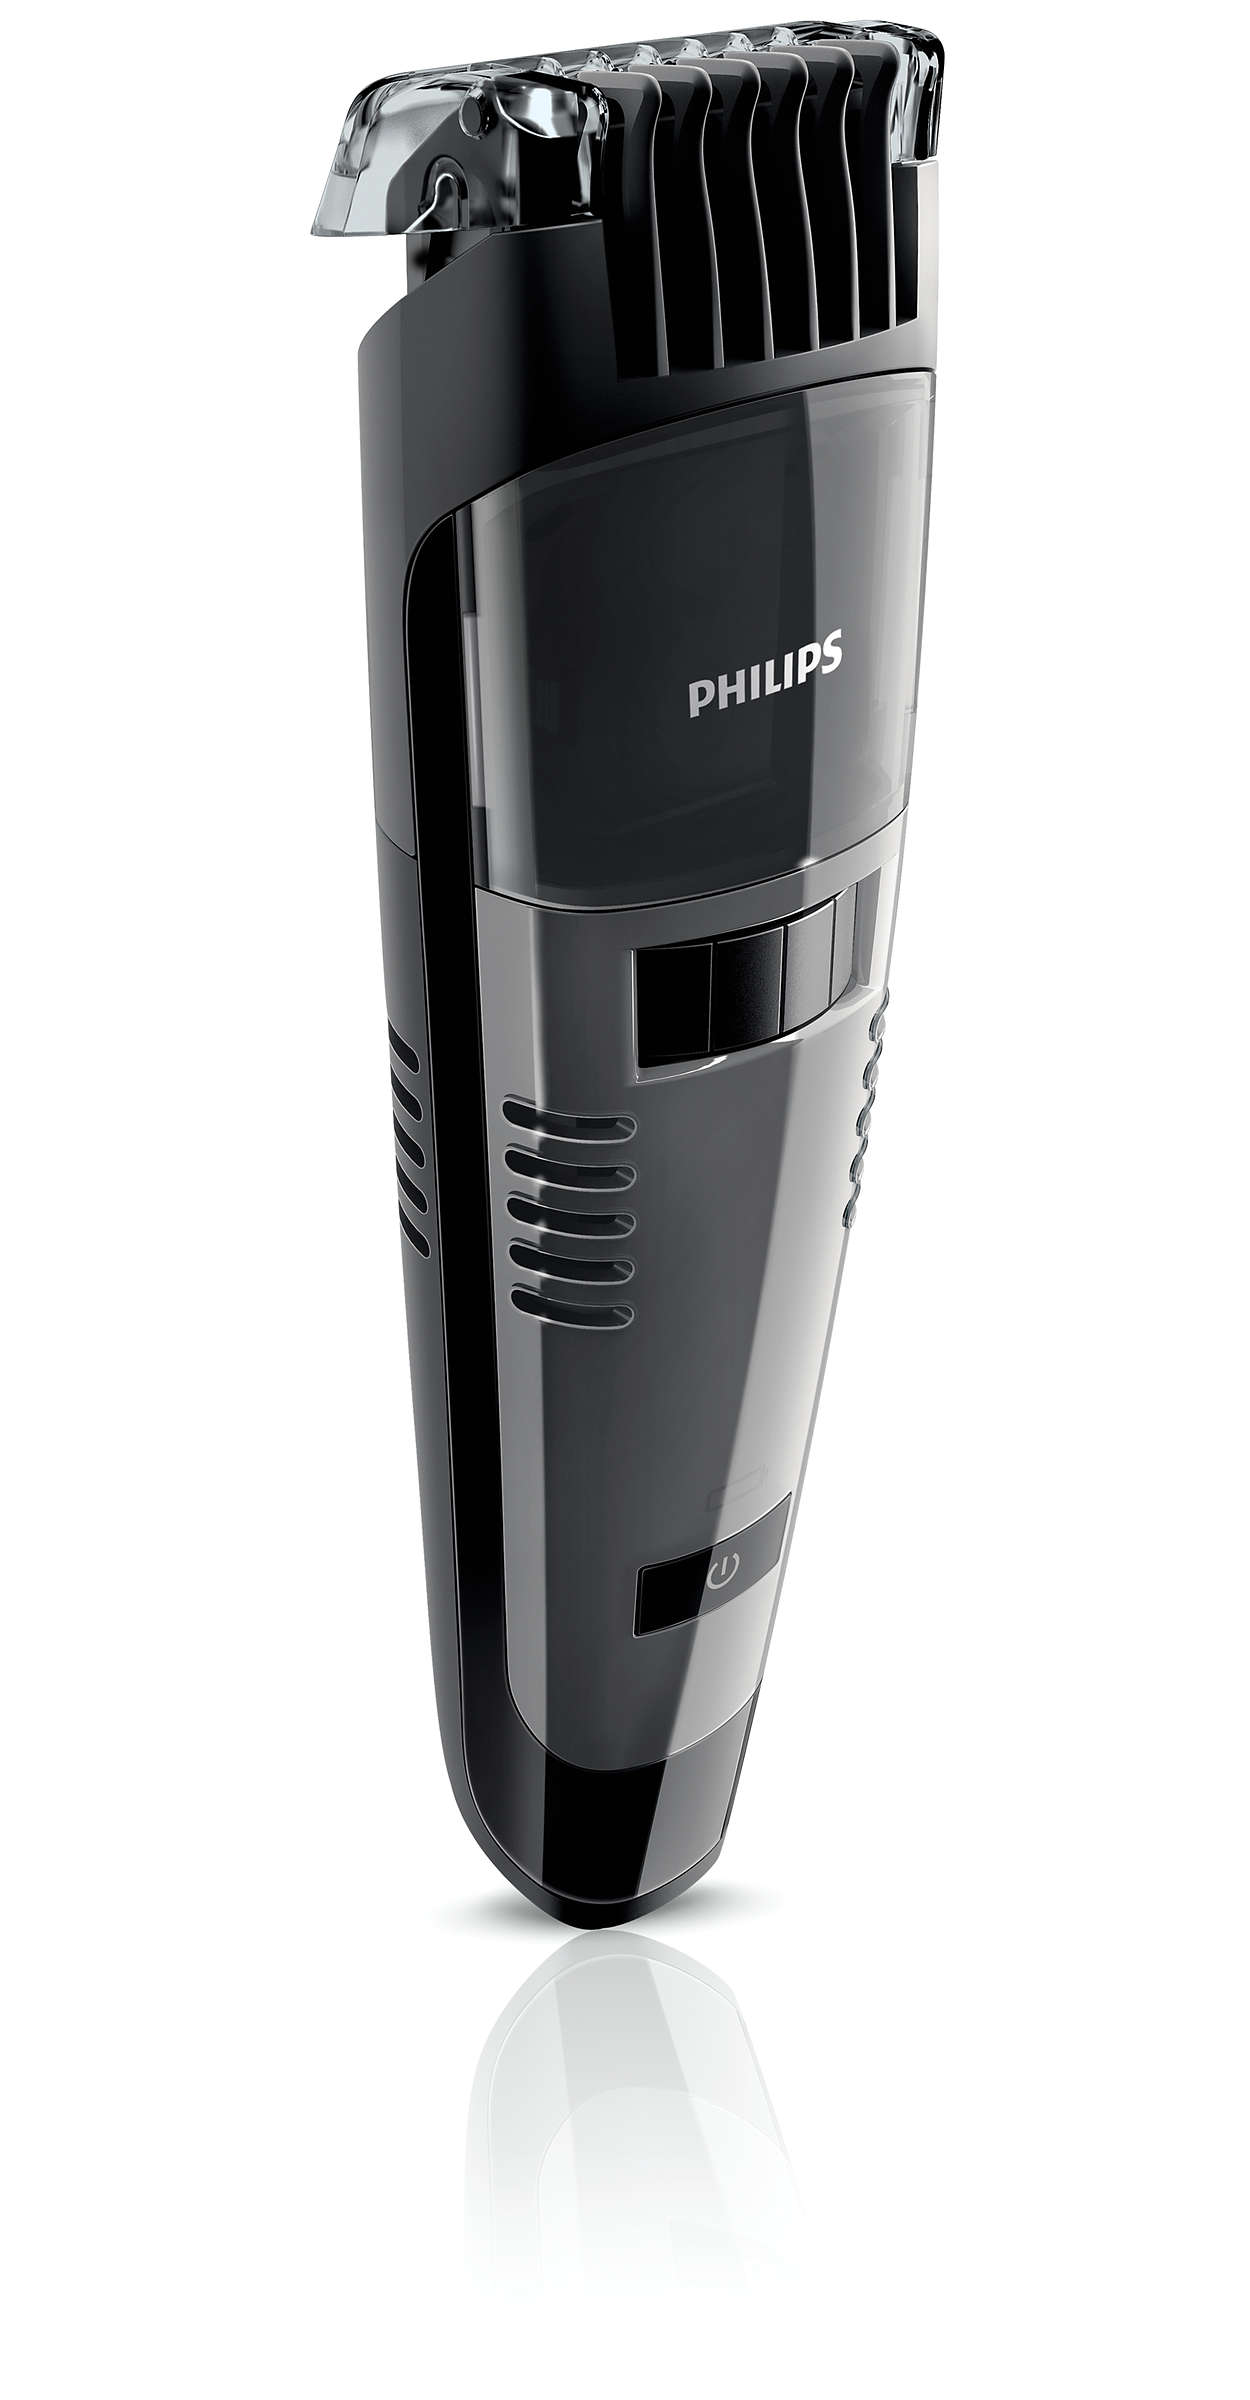 beardtrimmer series 7000 tondeuse barbe avec syst me d 39 aspiration qt4050 32 philips. Black Bedroom Furniture Sets. Home Design Ideas